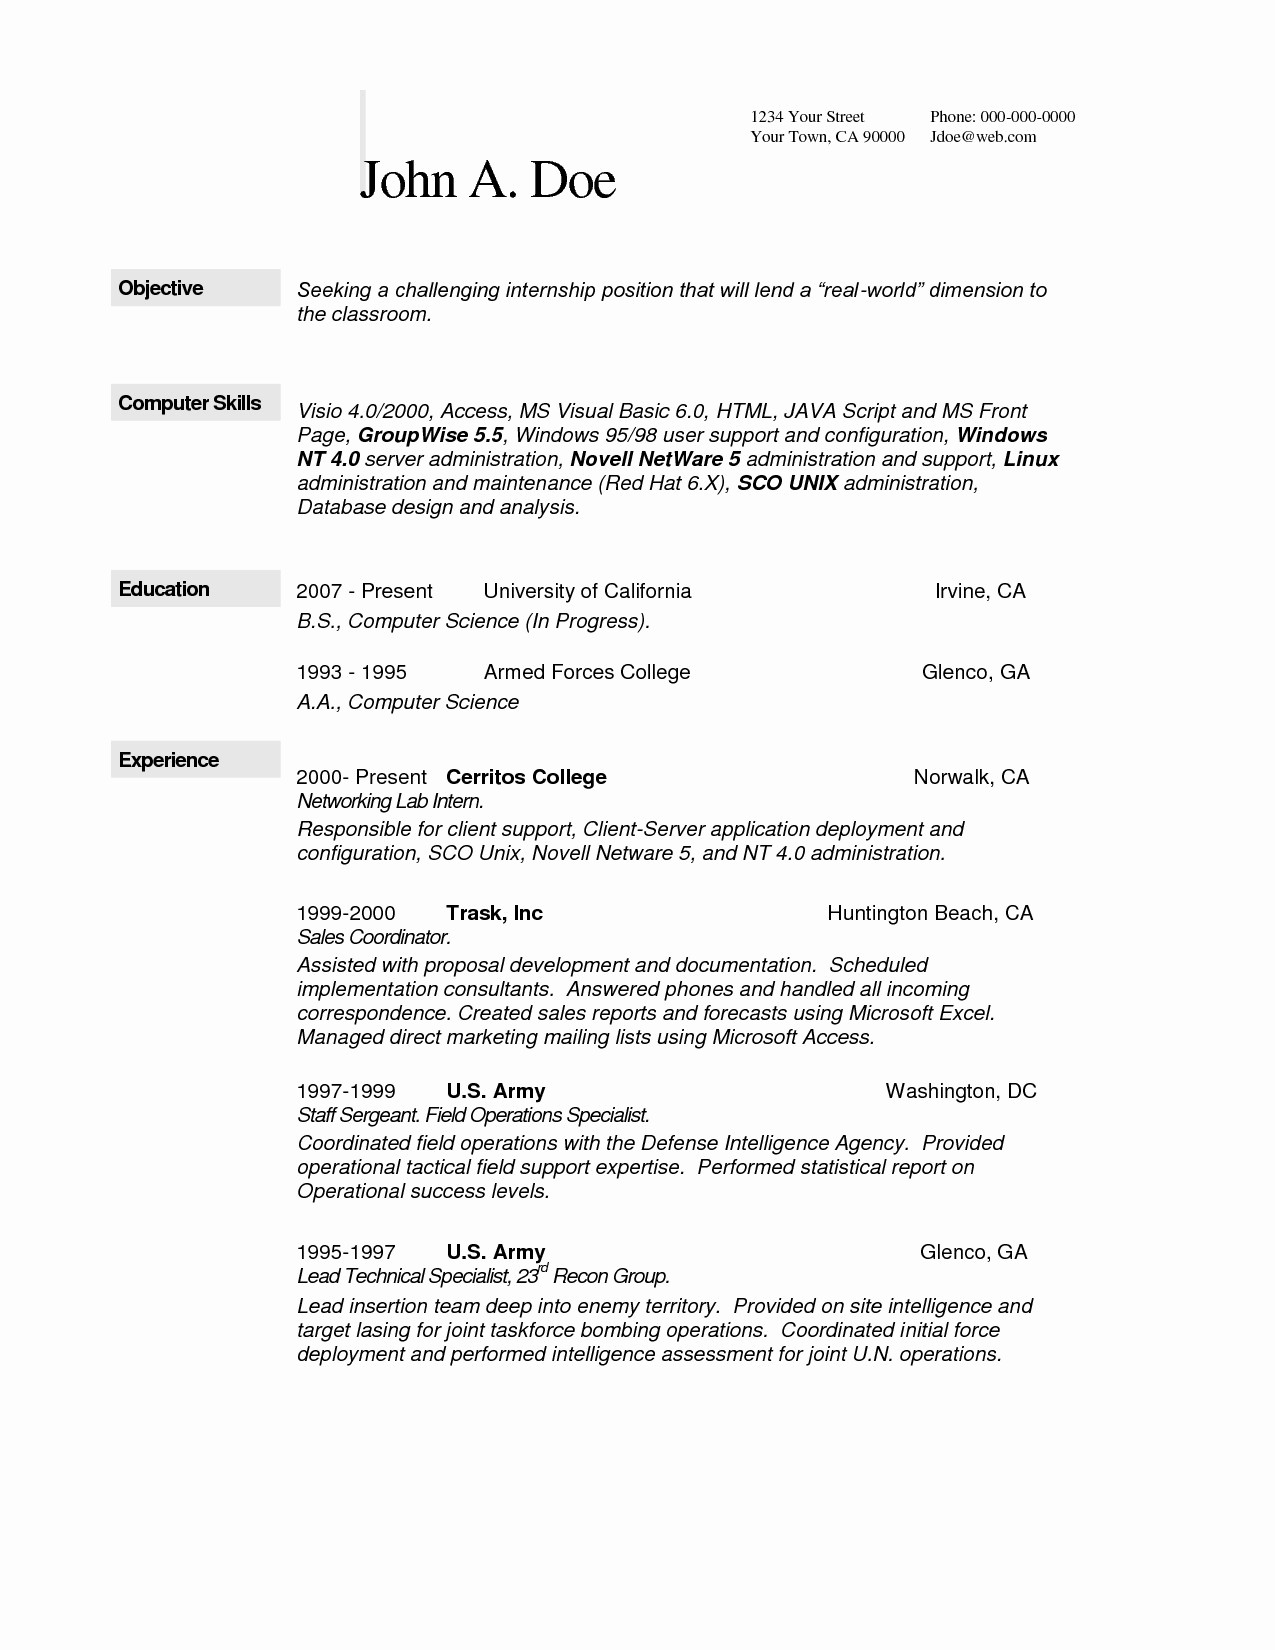 resume template for pharmacy technician Collection-20 Inspirational Pharmacy Technician Resume Example 7-c